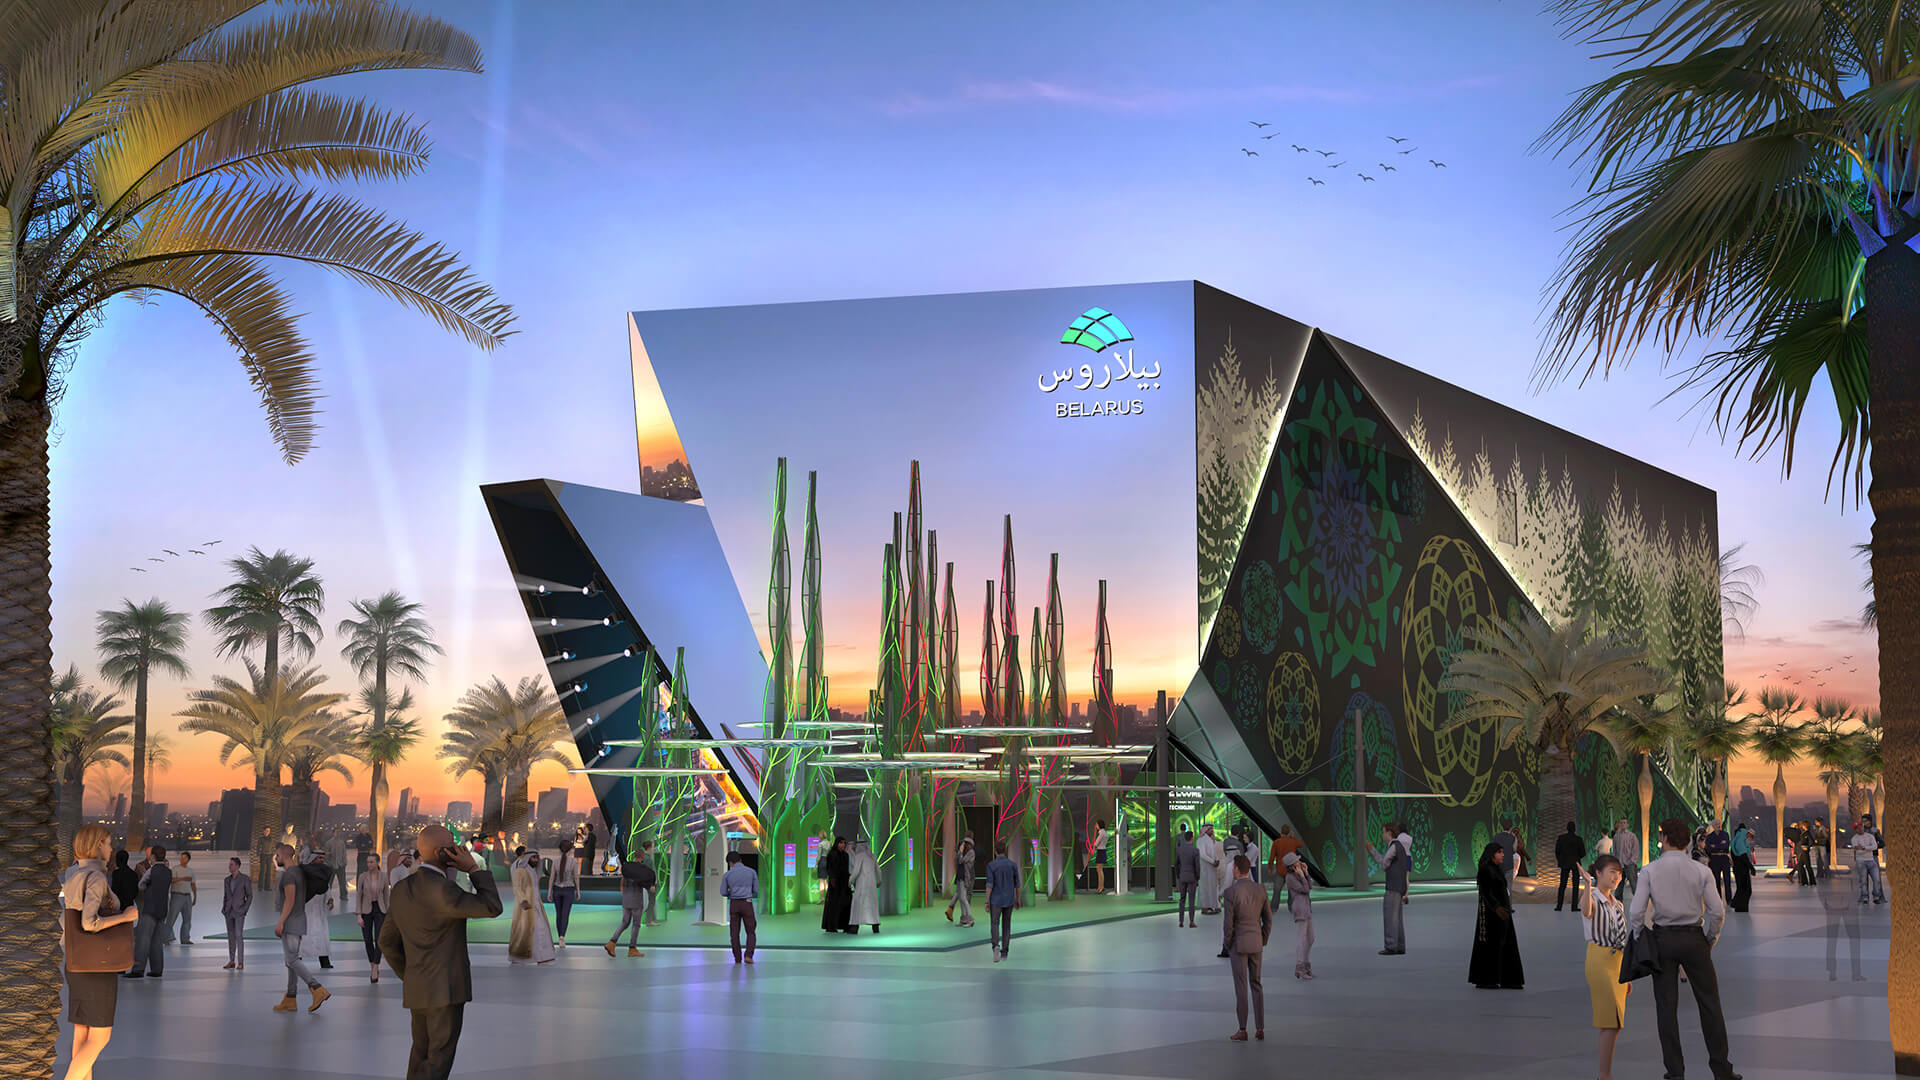 Belarus Pavilion for Expo Dubai 2020 (render) | Made in Turkey: Curated by Arhan Kayar | STIRworld